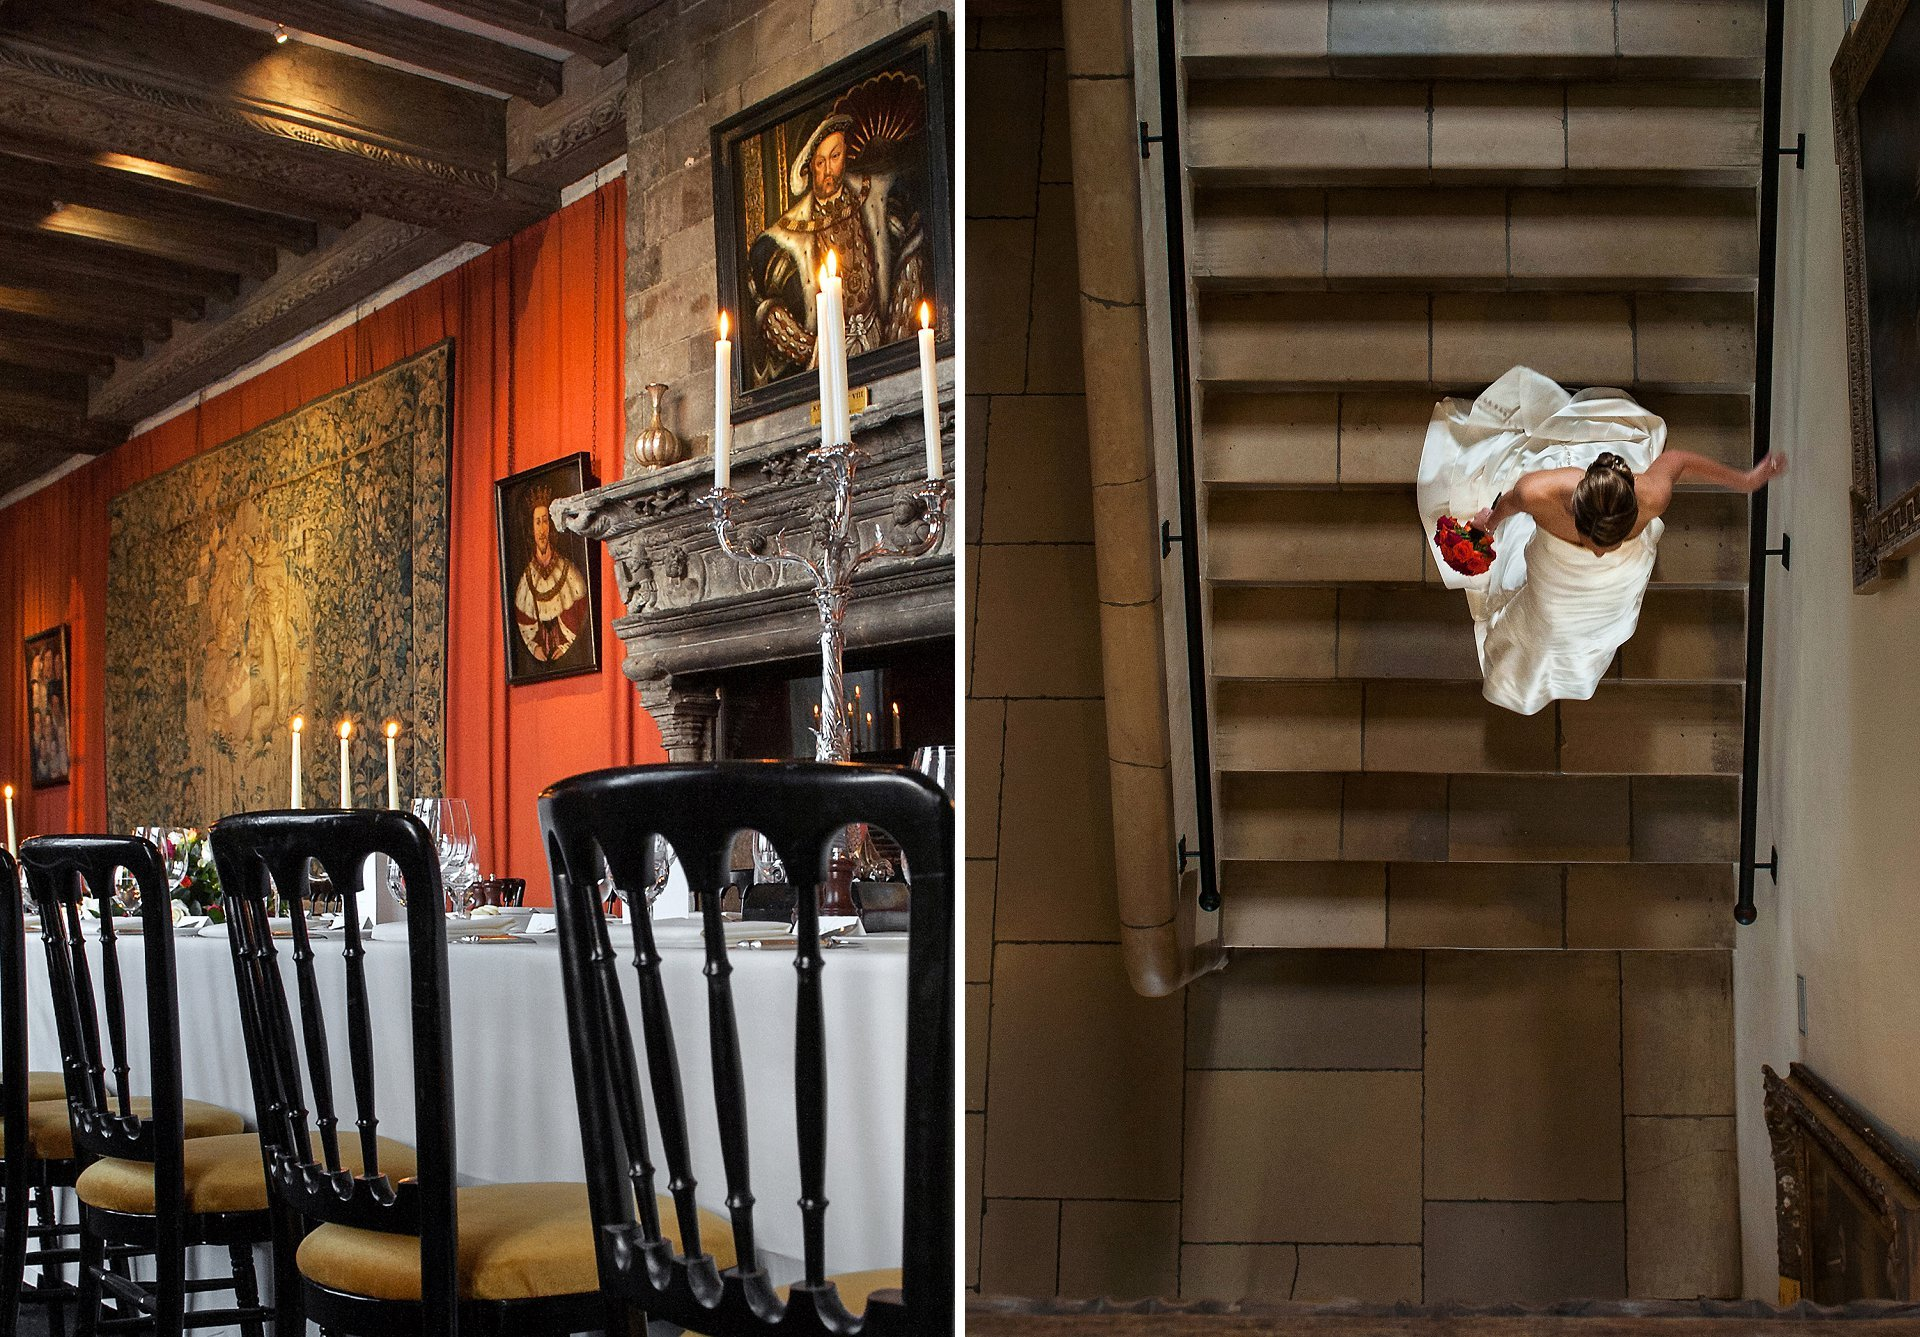 Henry VIII's portrait looks down on you as you celebrate your wedding reception in the loveliest castle in the World. The stone staircase is great for original looking wedding photographs and here the bride is captured walking dow the steps holding her flowers in one hand